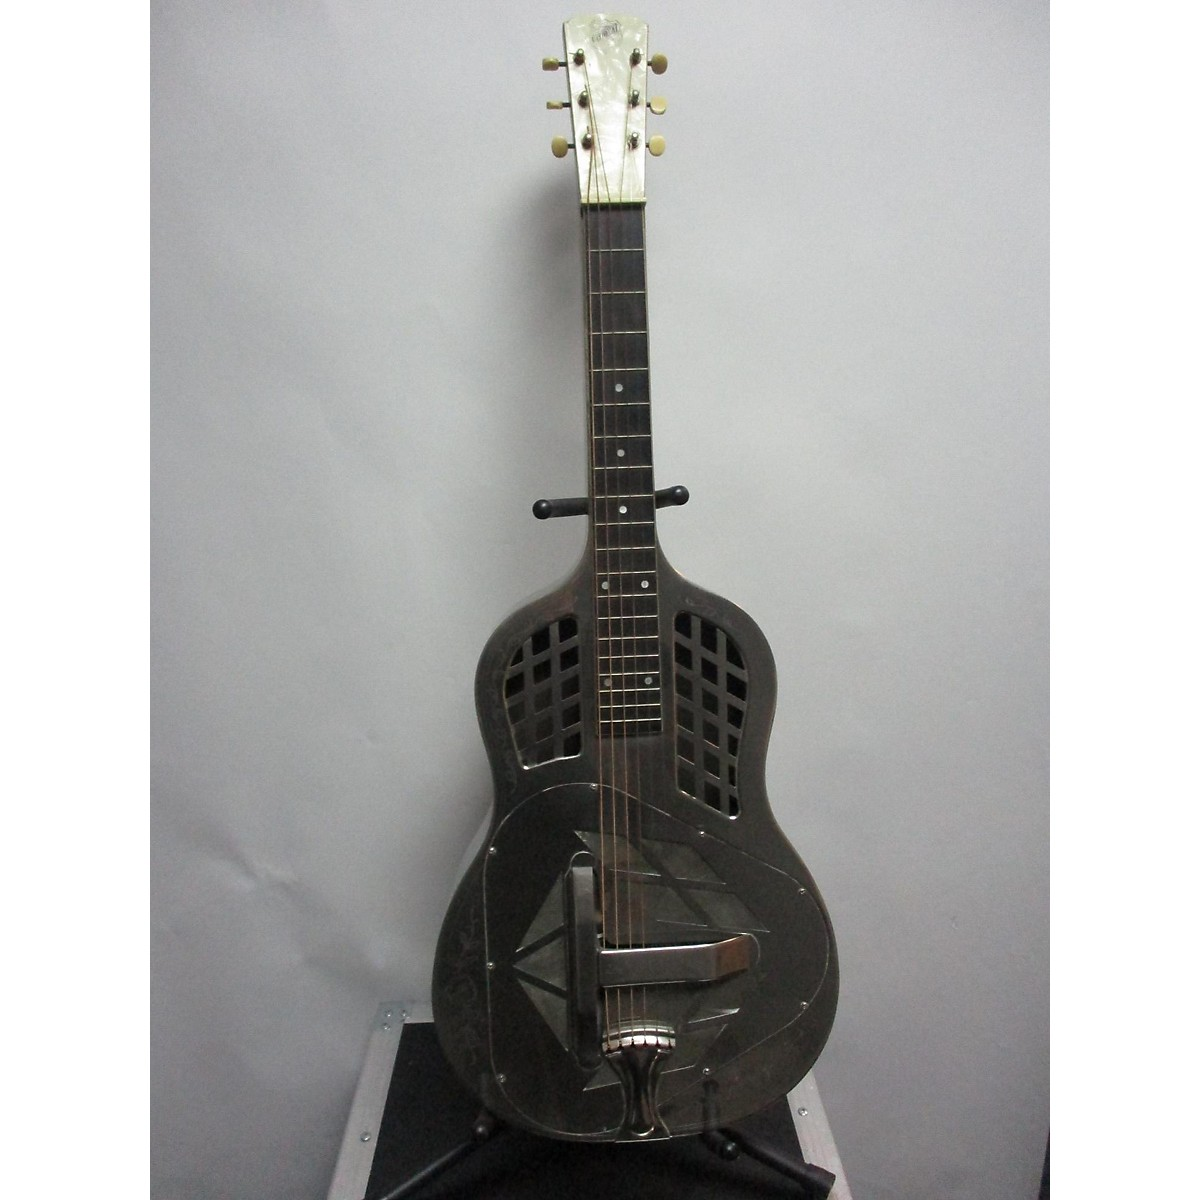 National 1938 Tricone Style 2 Square Neck Resonator Guitar